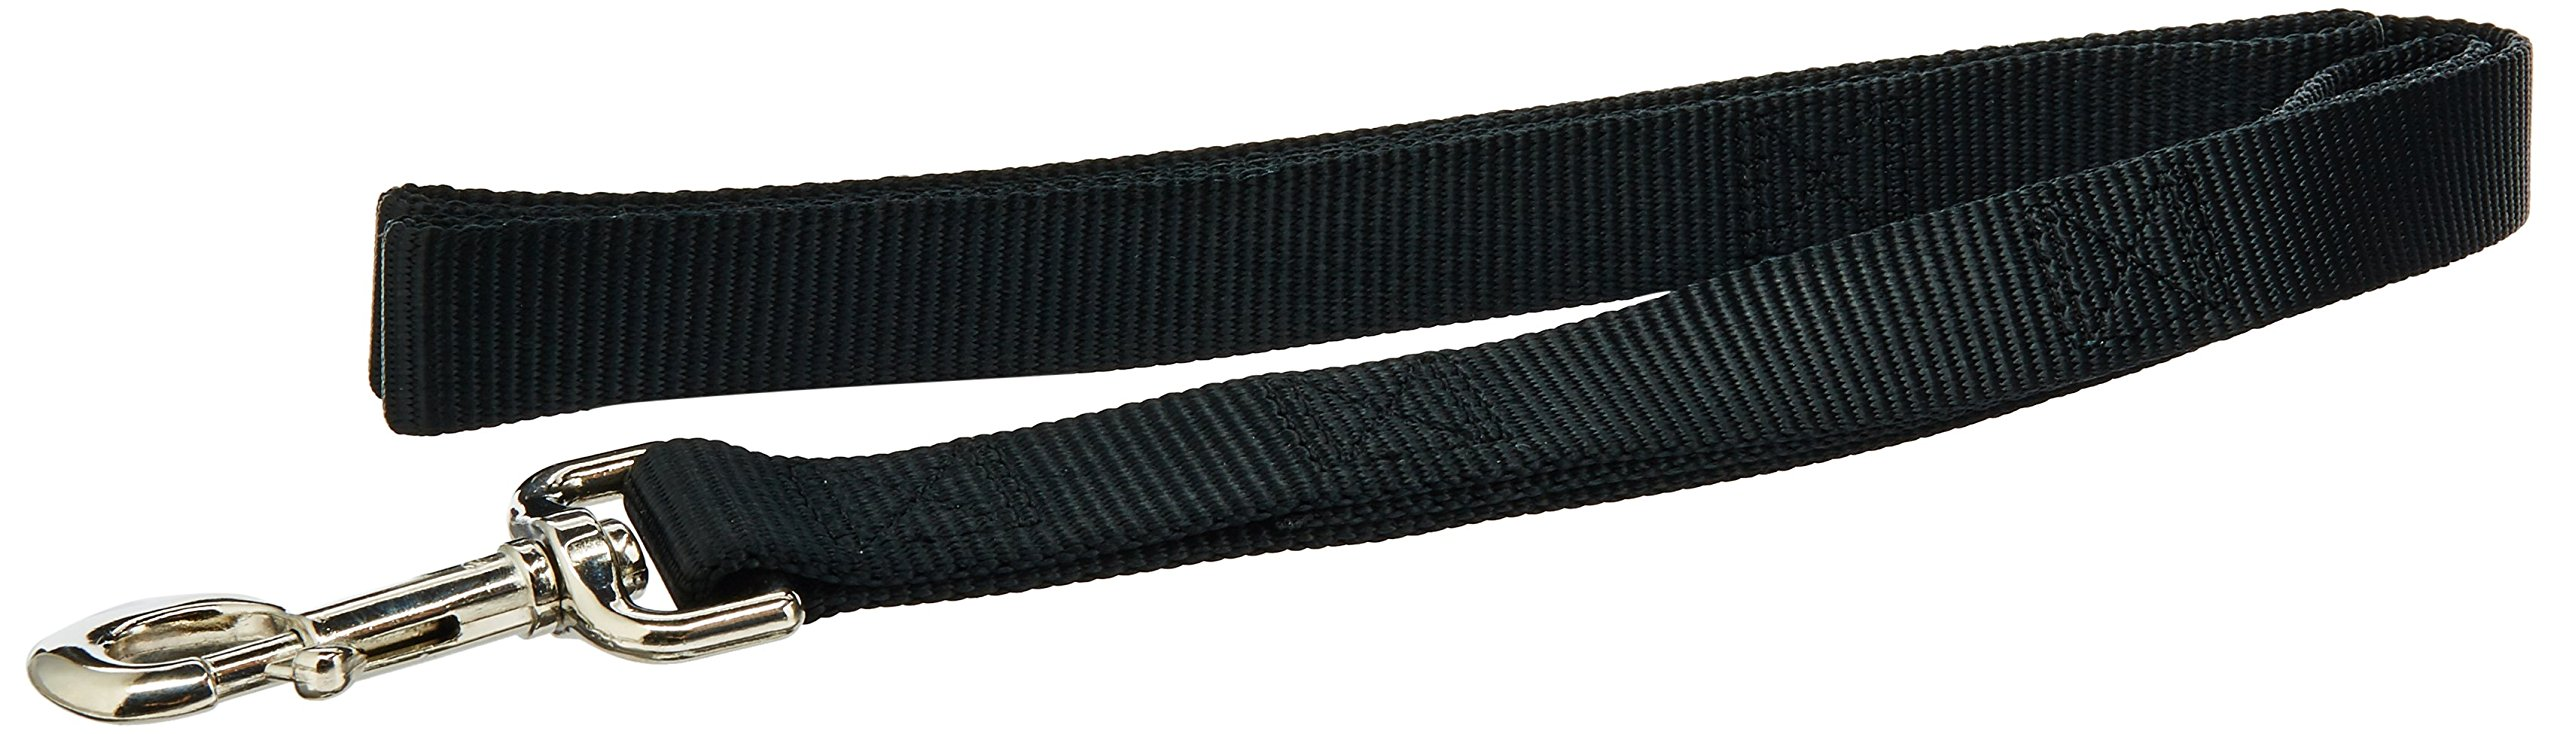 Coastal Pet Products DCP904HBLK Nylon Loops Double Handle Dog Leash, 1-Inch by 4-Feet, Black